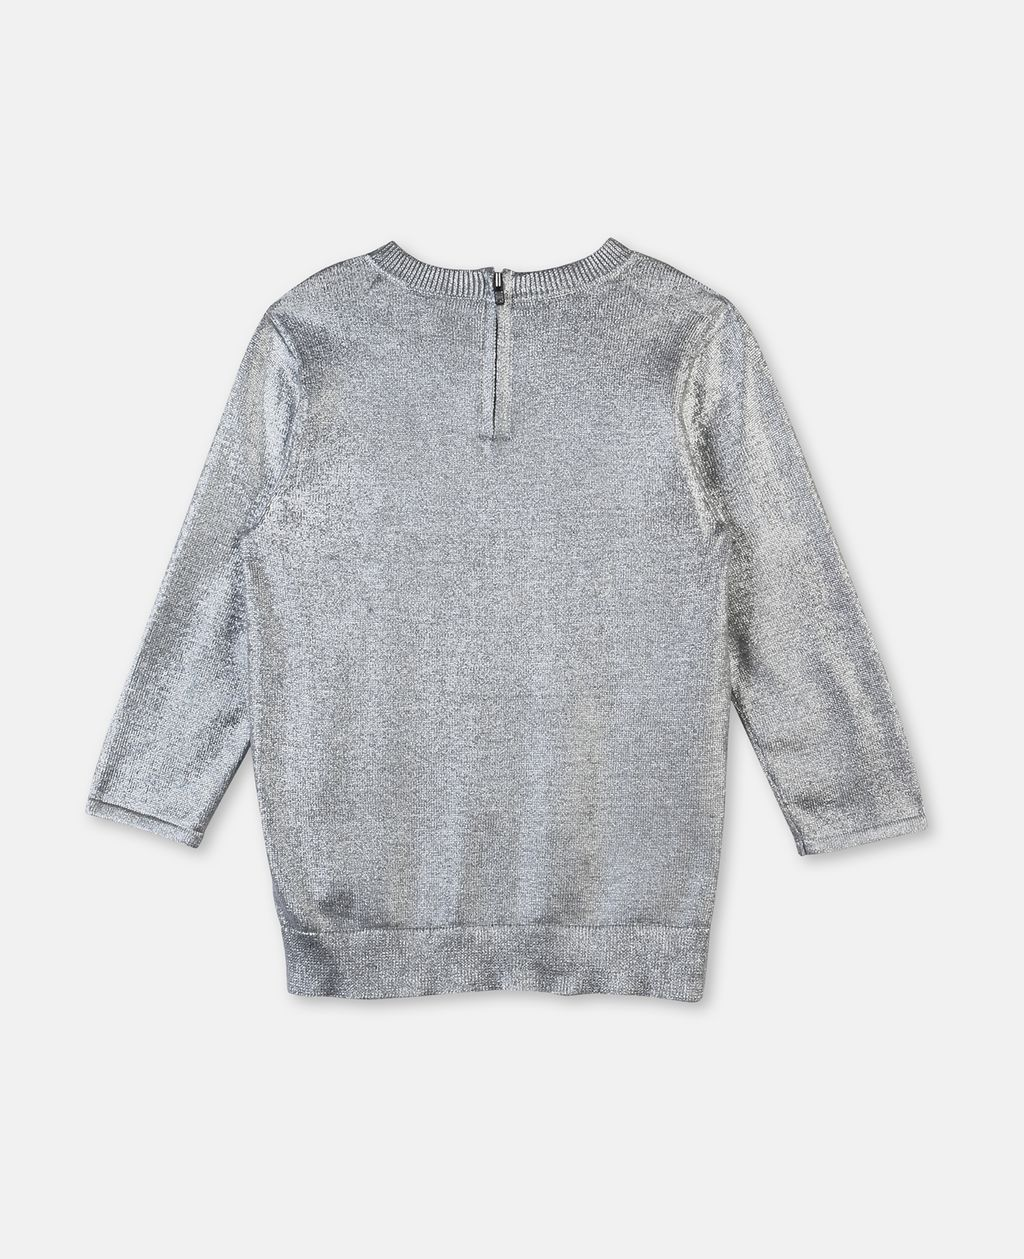 Jewel Silver Coated Sweater - STELLA MCCARTNEY KIDS